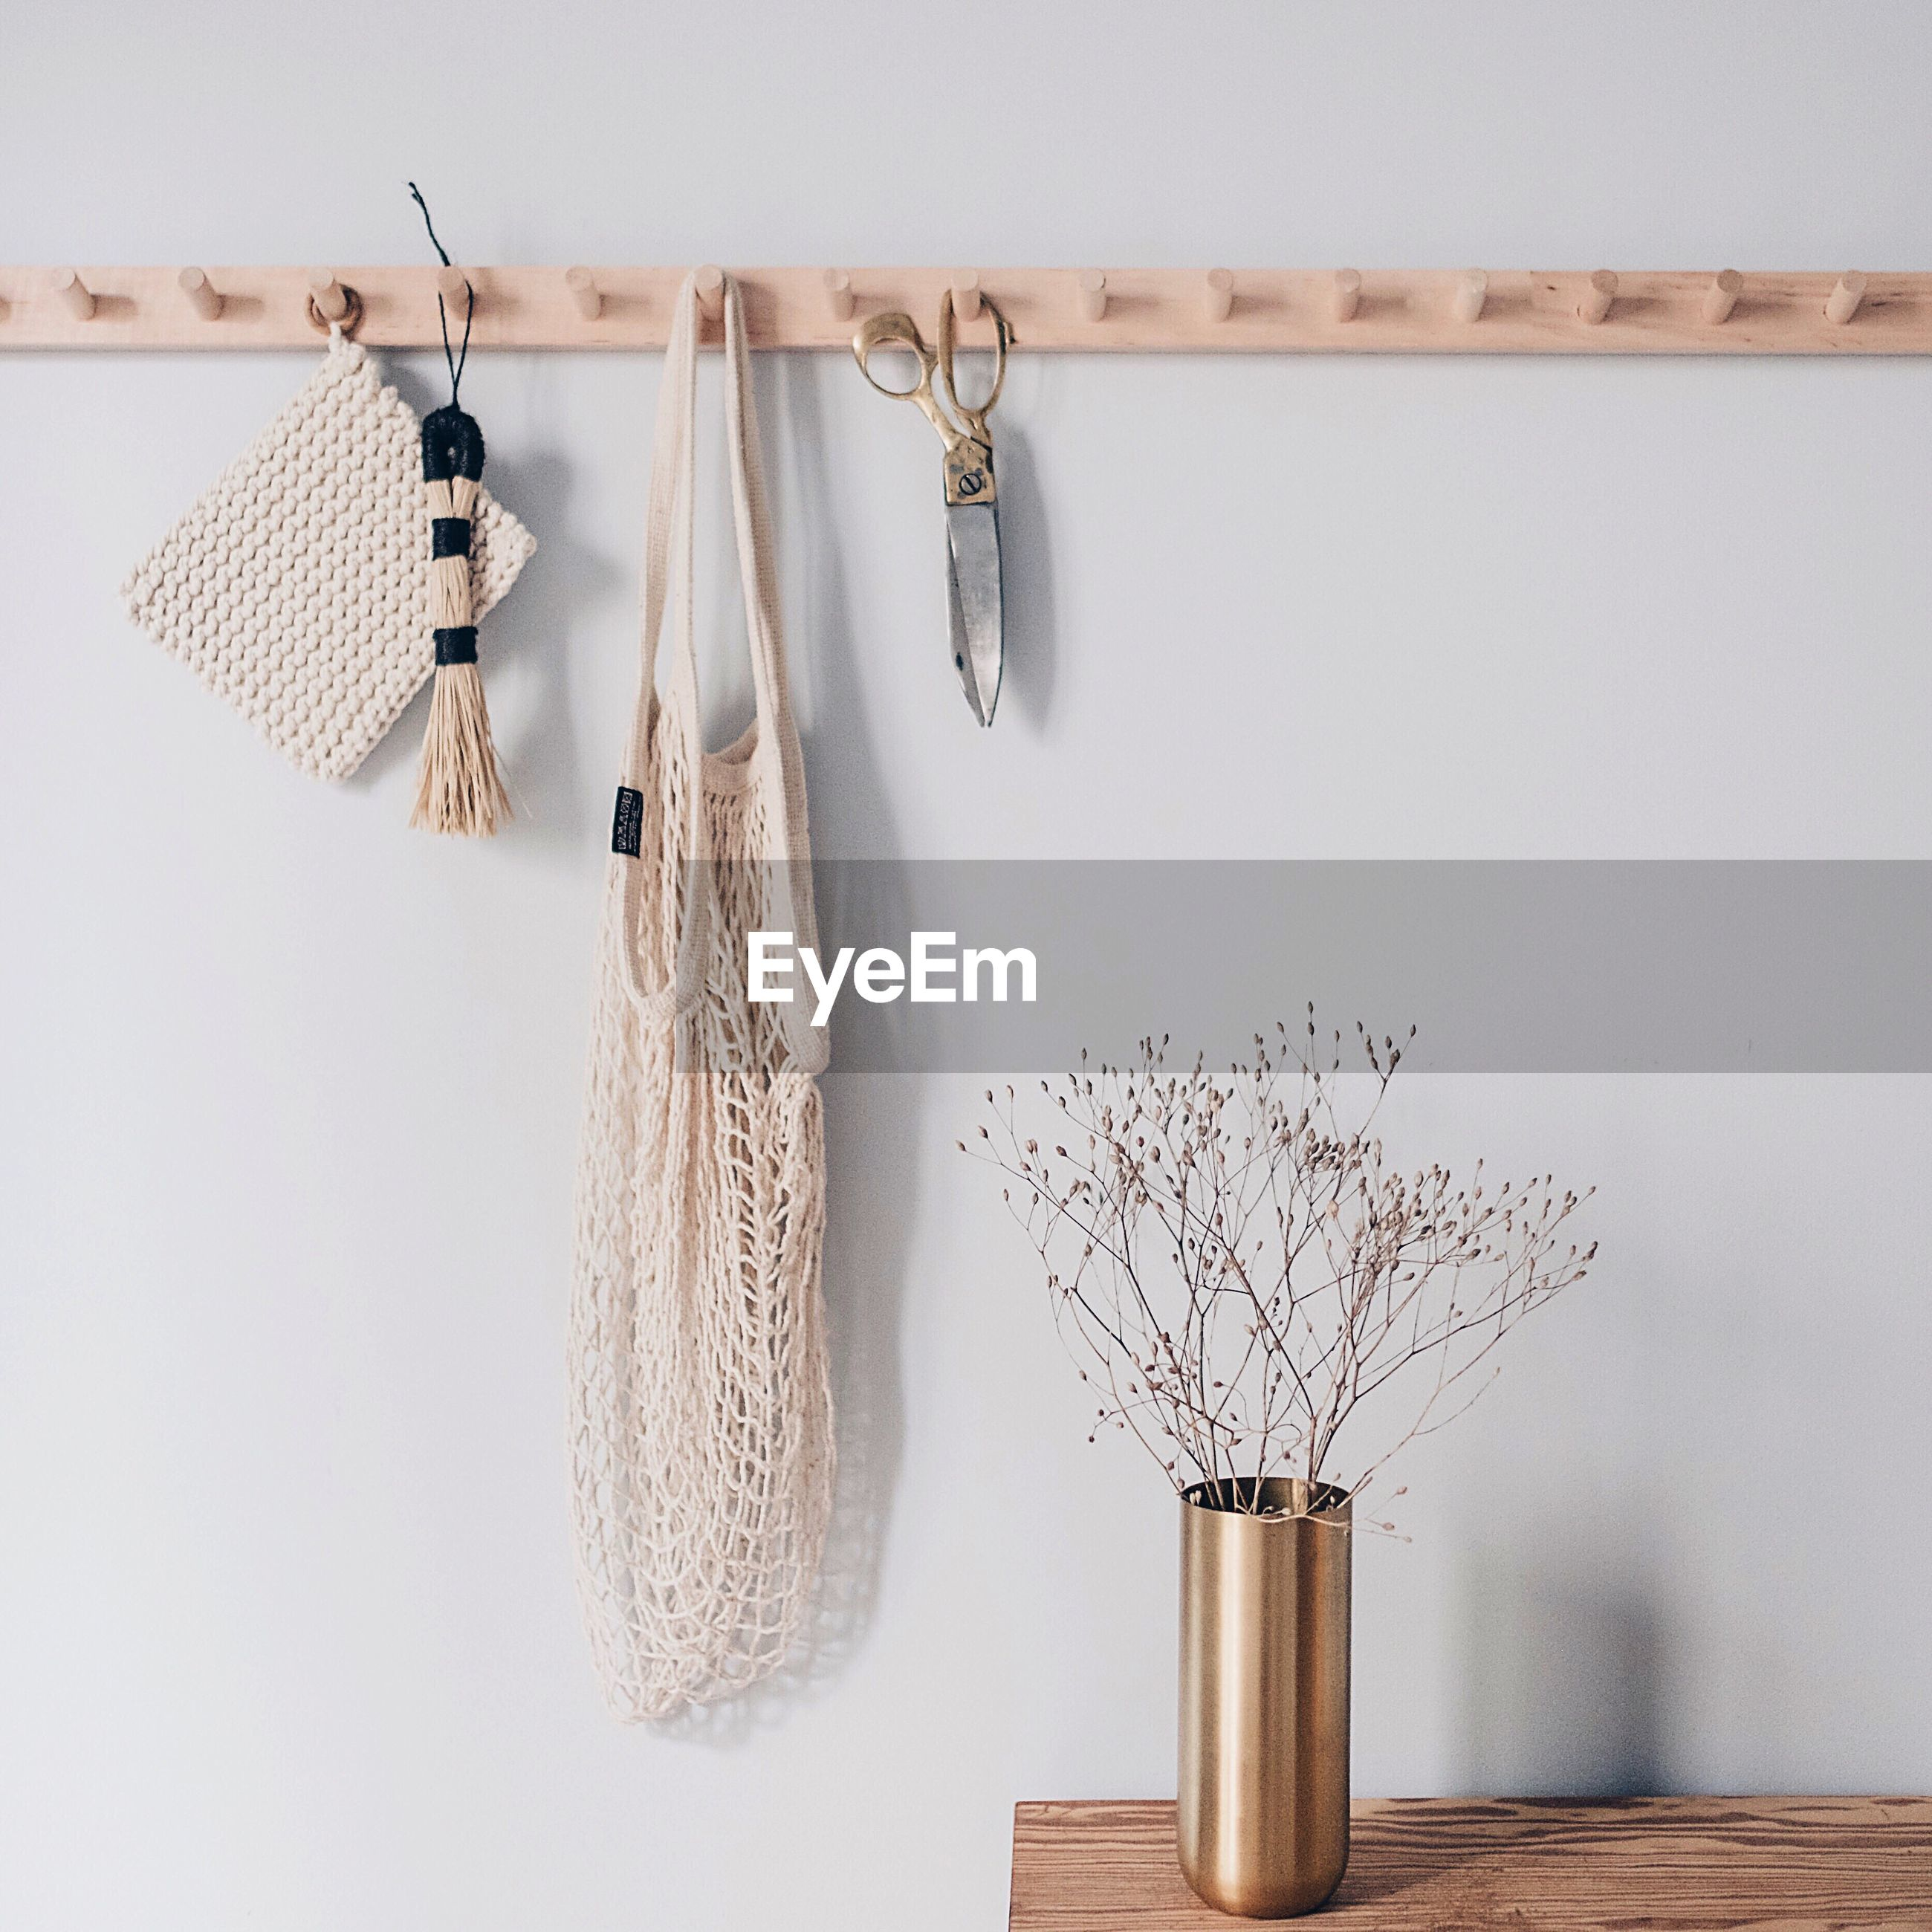 Clothes hanging on wood